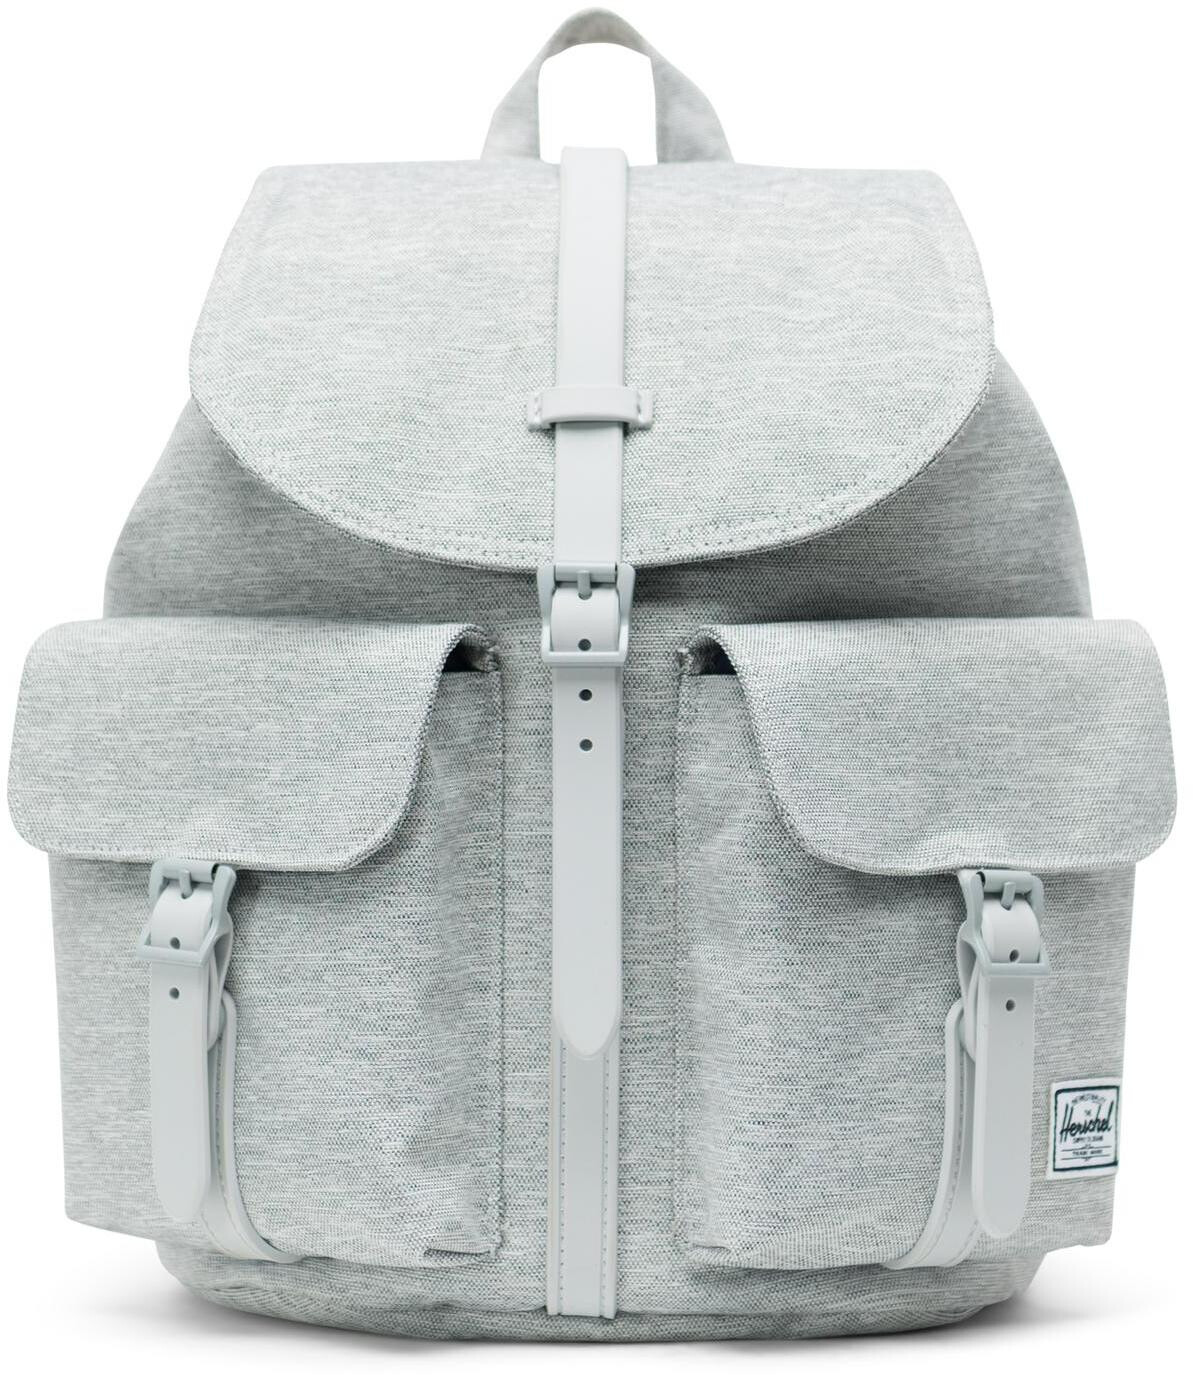 Herschel Dawson Small Rygsæk, light grey crosshatch (2019) | Travel bags